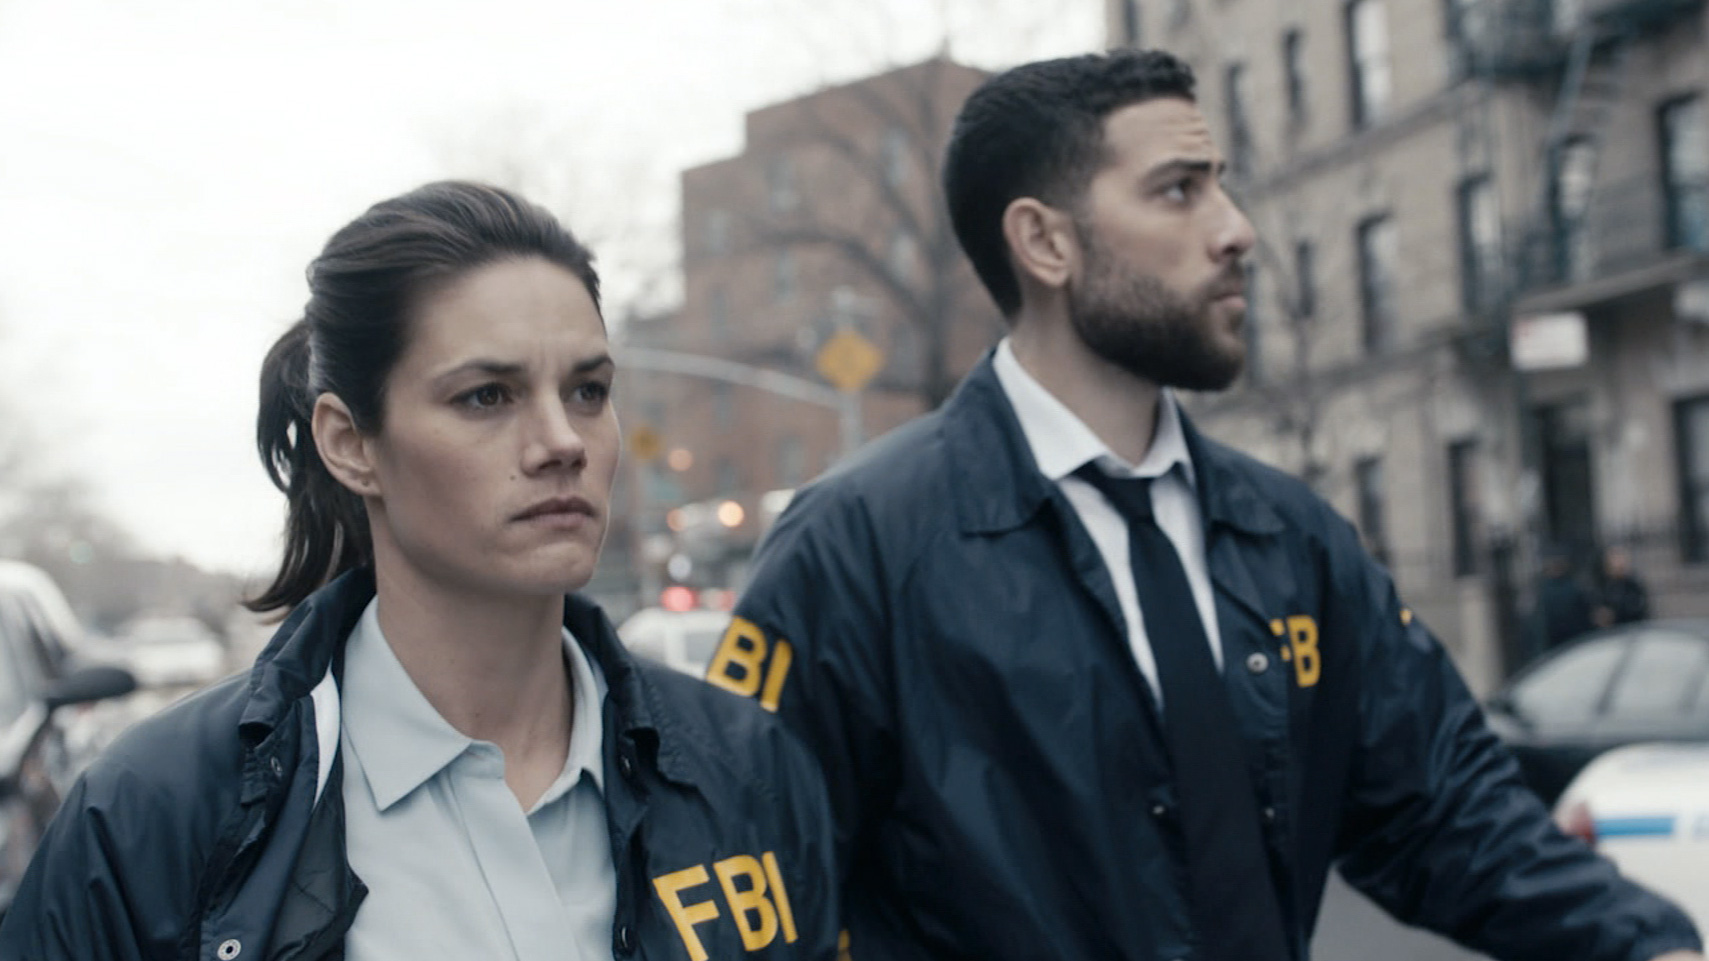 fbi-serie-tv-crime-1